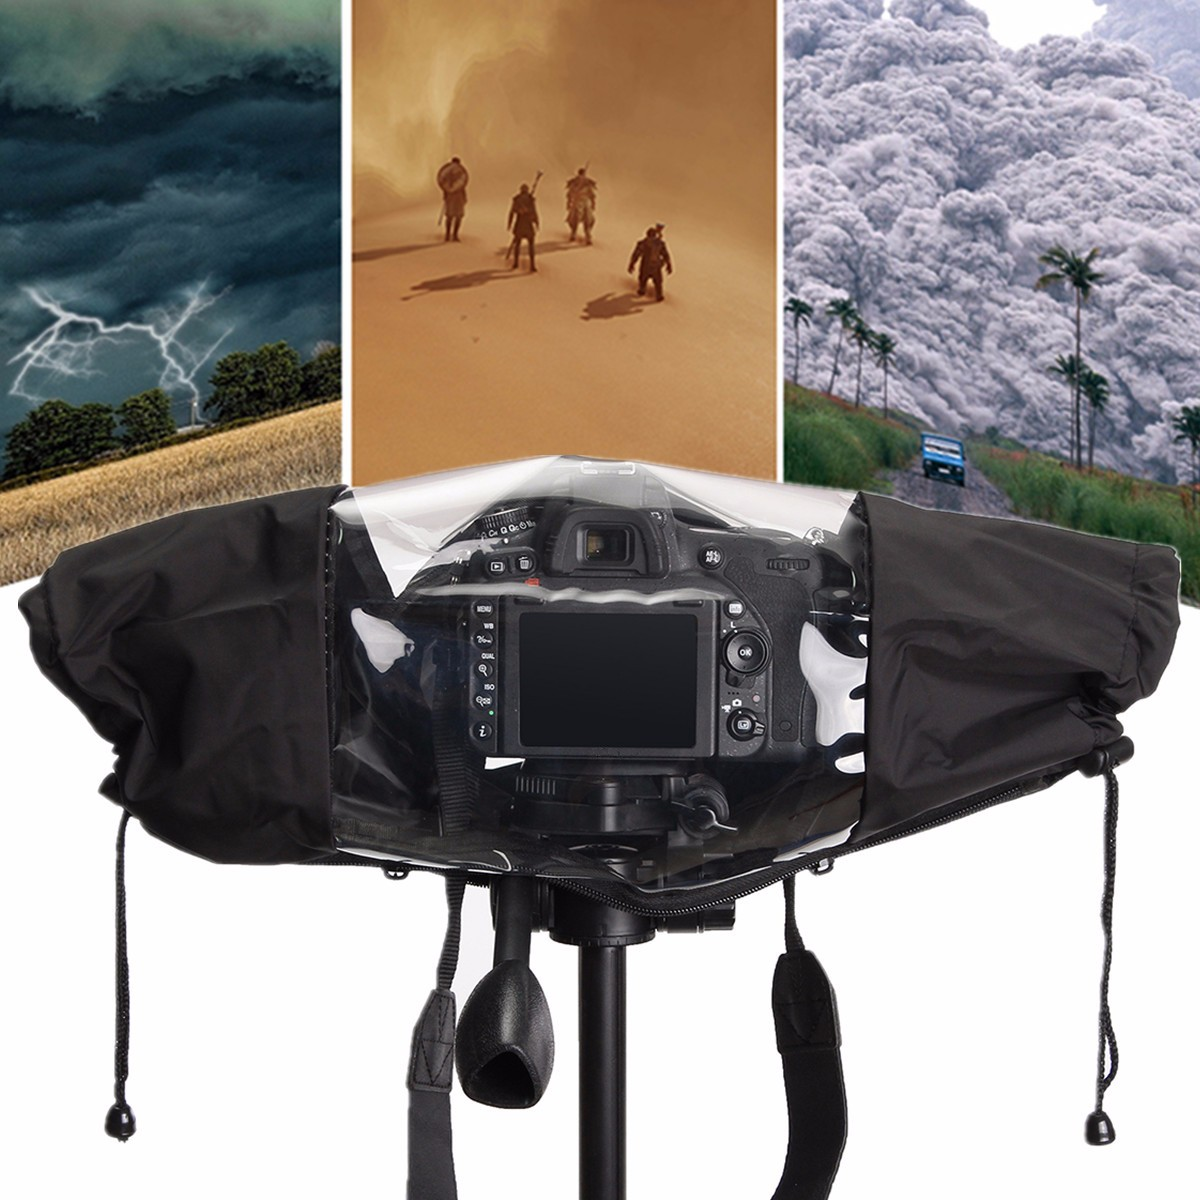 Nylon Rain Cover Waterproof Case Photo Photography Accessories for Canon Nikon Pentax DSLR Camera